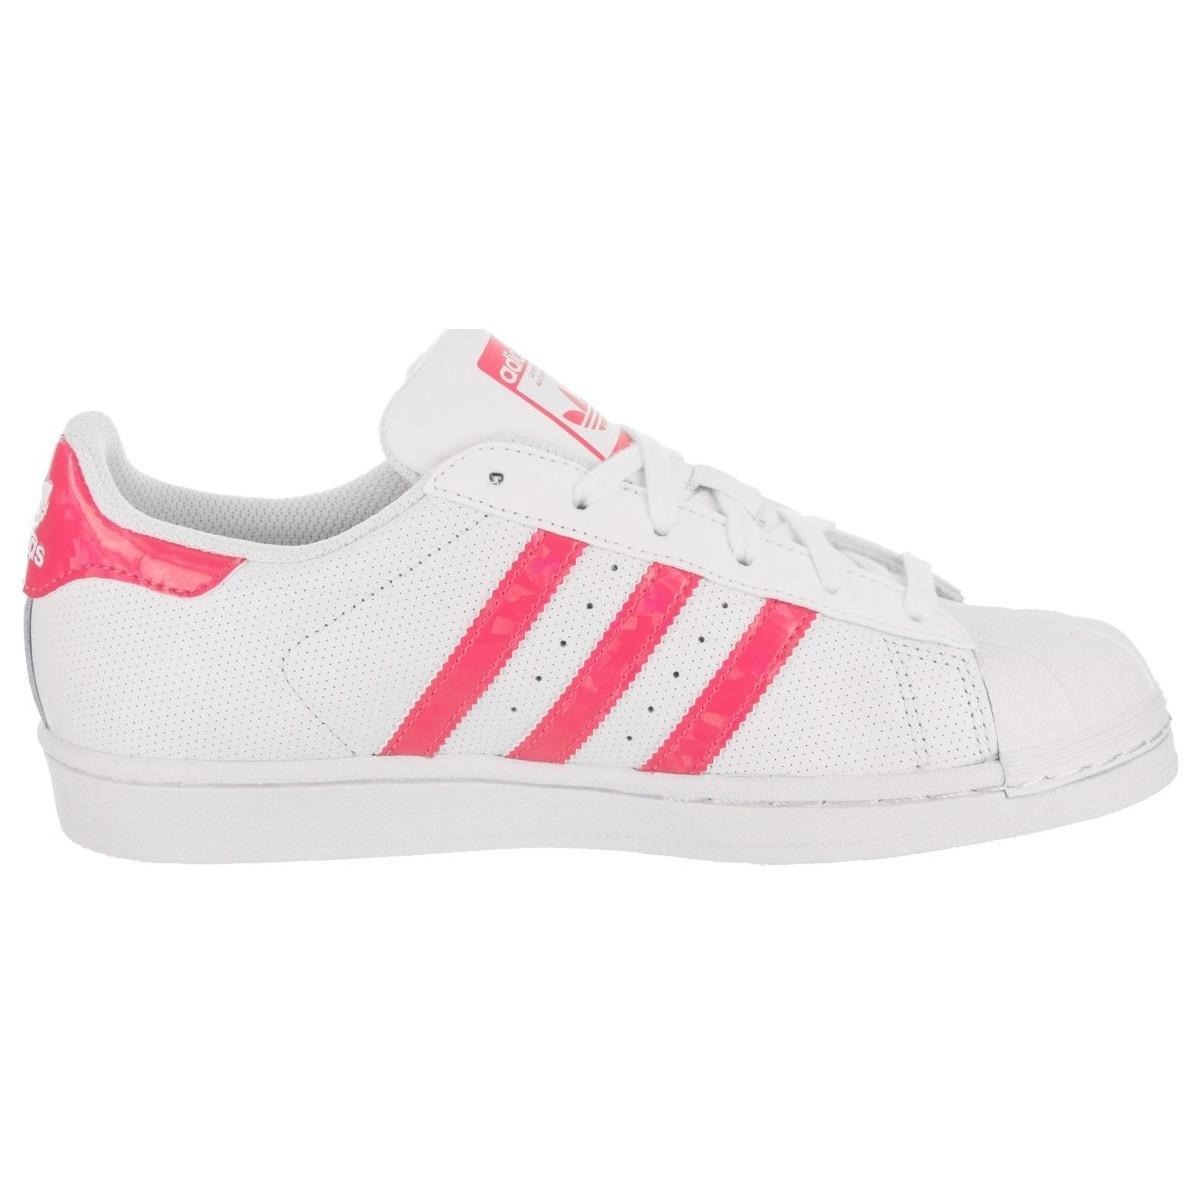 adidas Superstar Db1210 Women's Shoes (trainers) In White